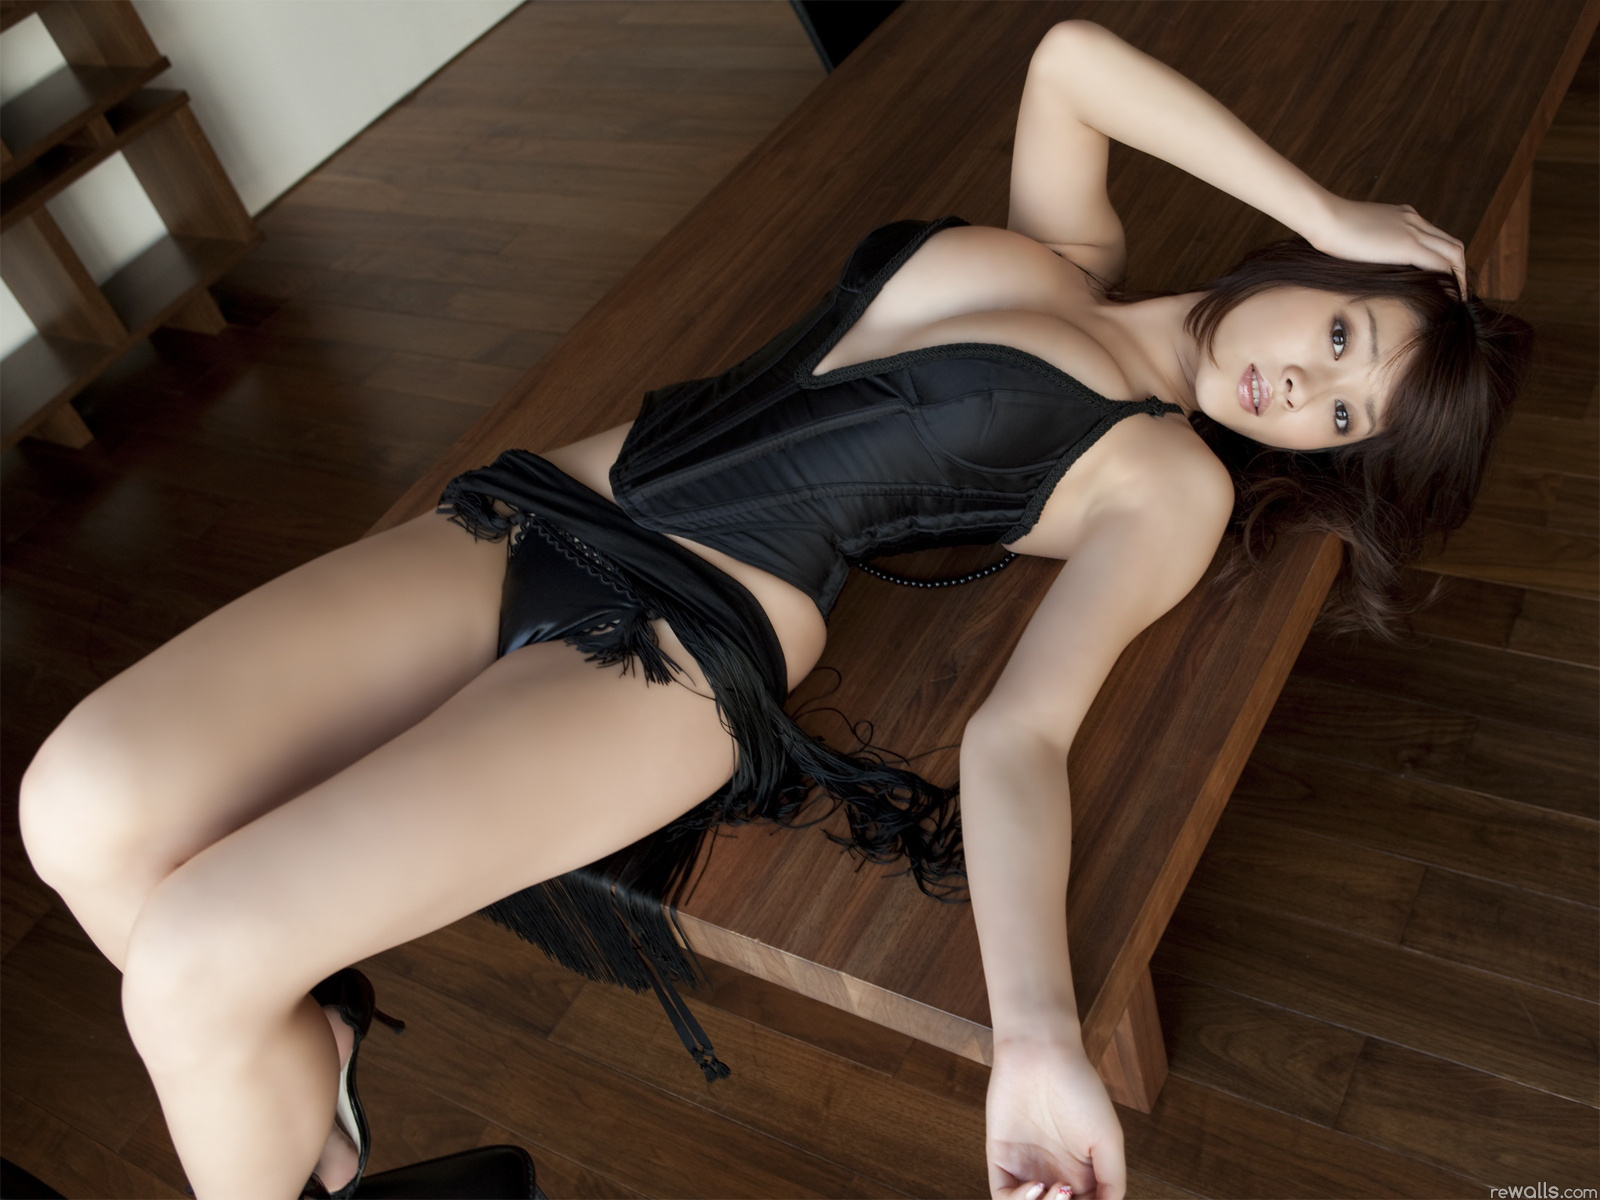 Beautiful Asian model Marica Hase casts her sexy lingerie aside to pose naked № 1461679 бесплатно